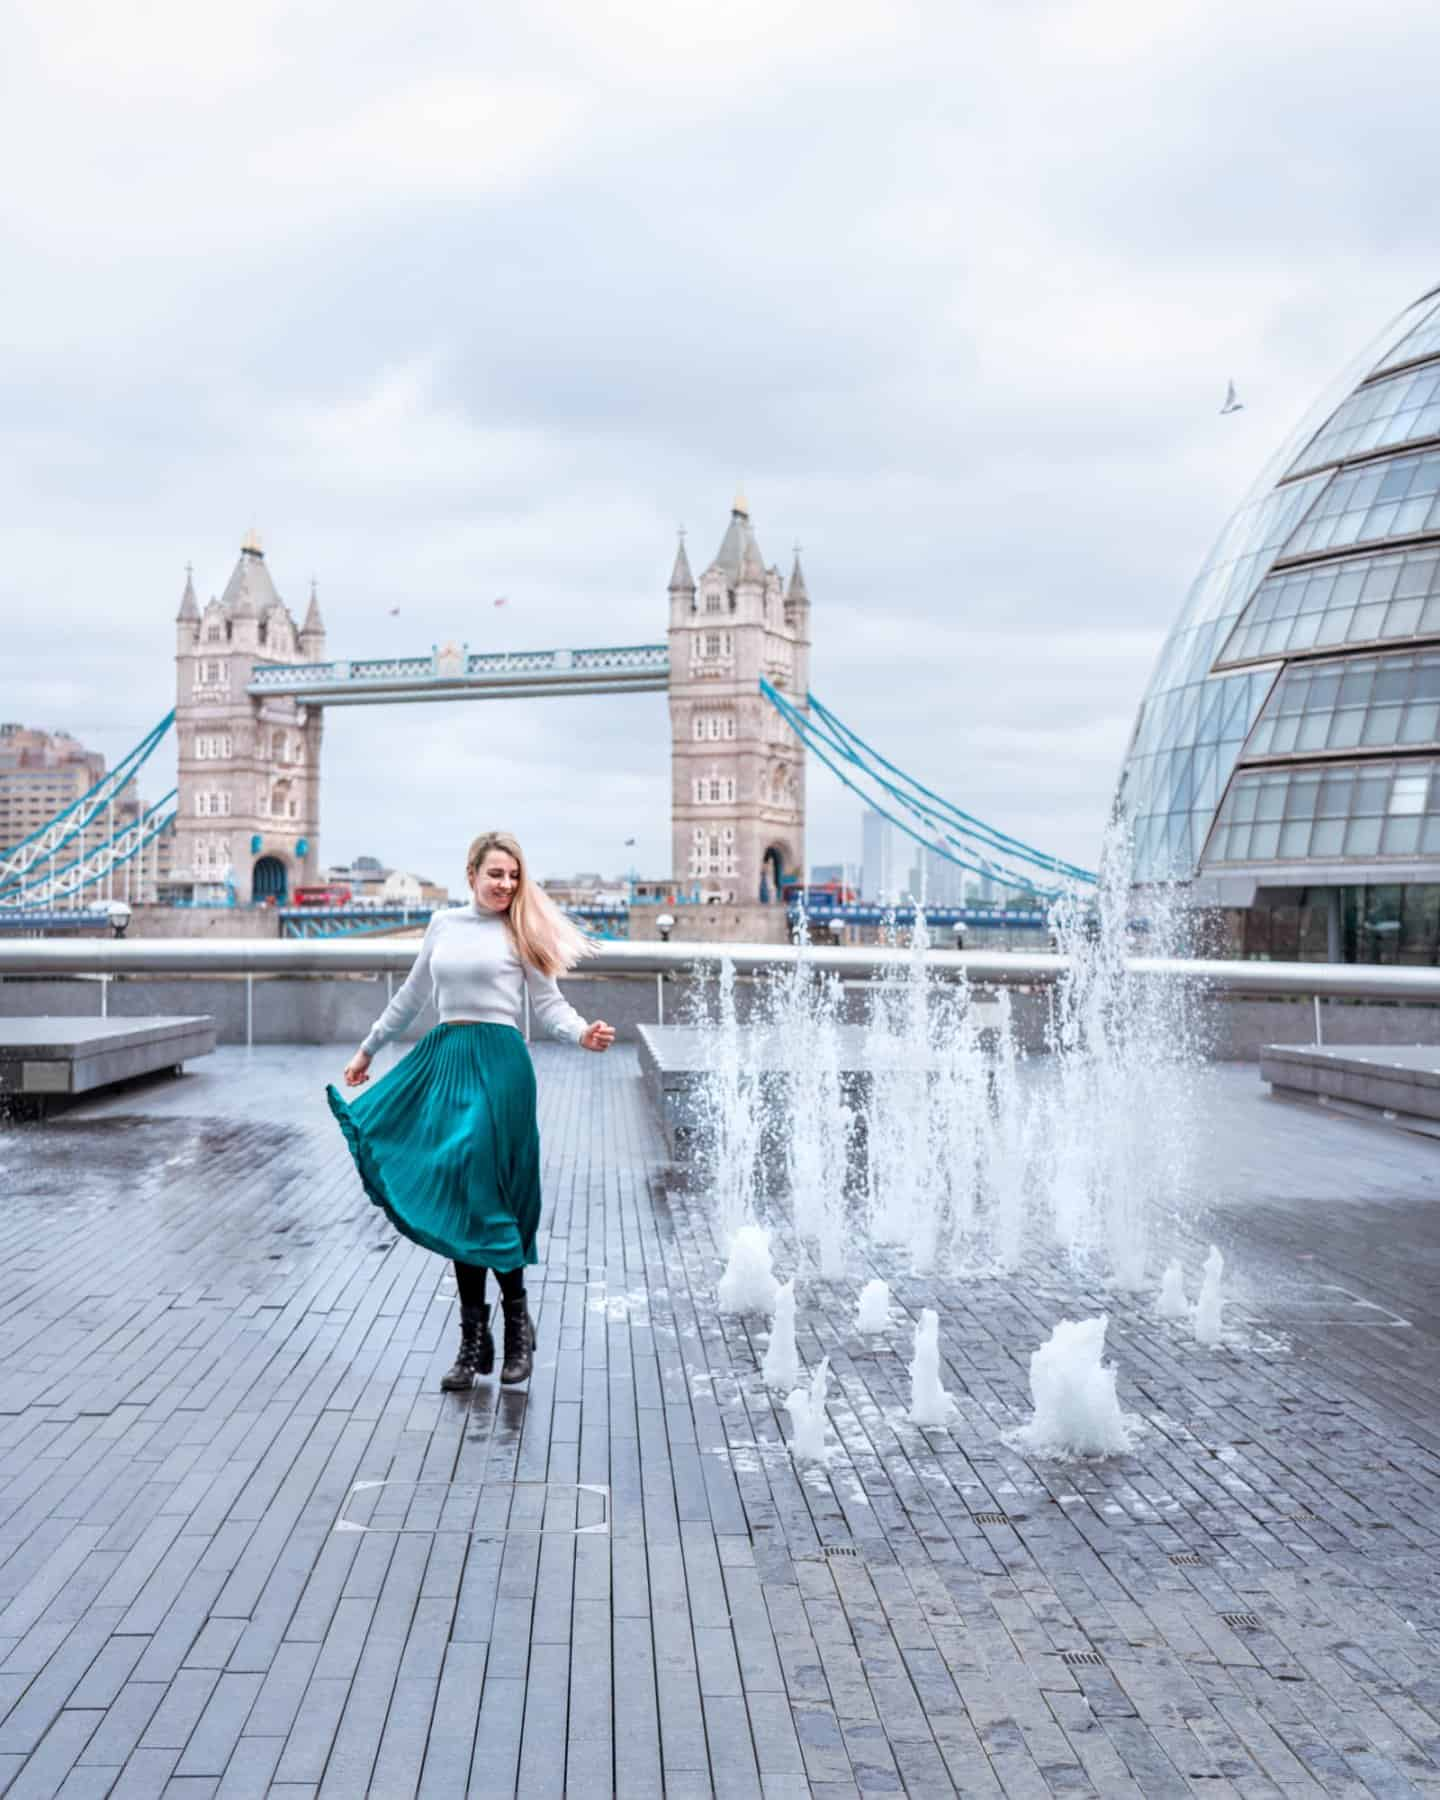 A girl twirling next to the water fountains by City Hall with Tower Bridge in the background